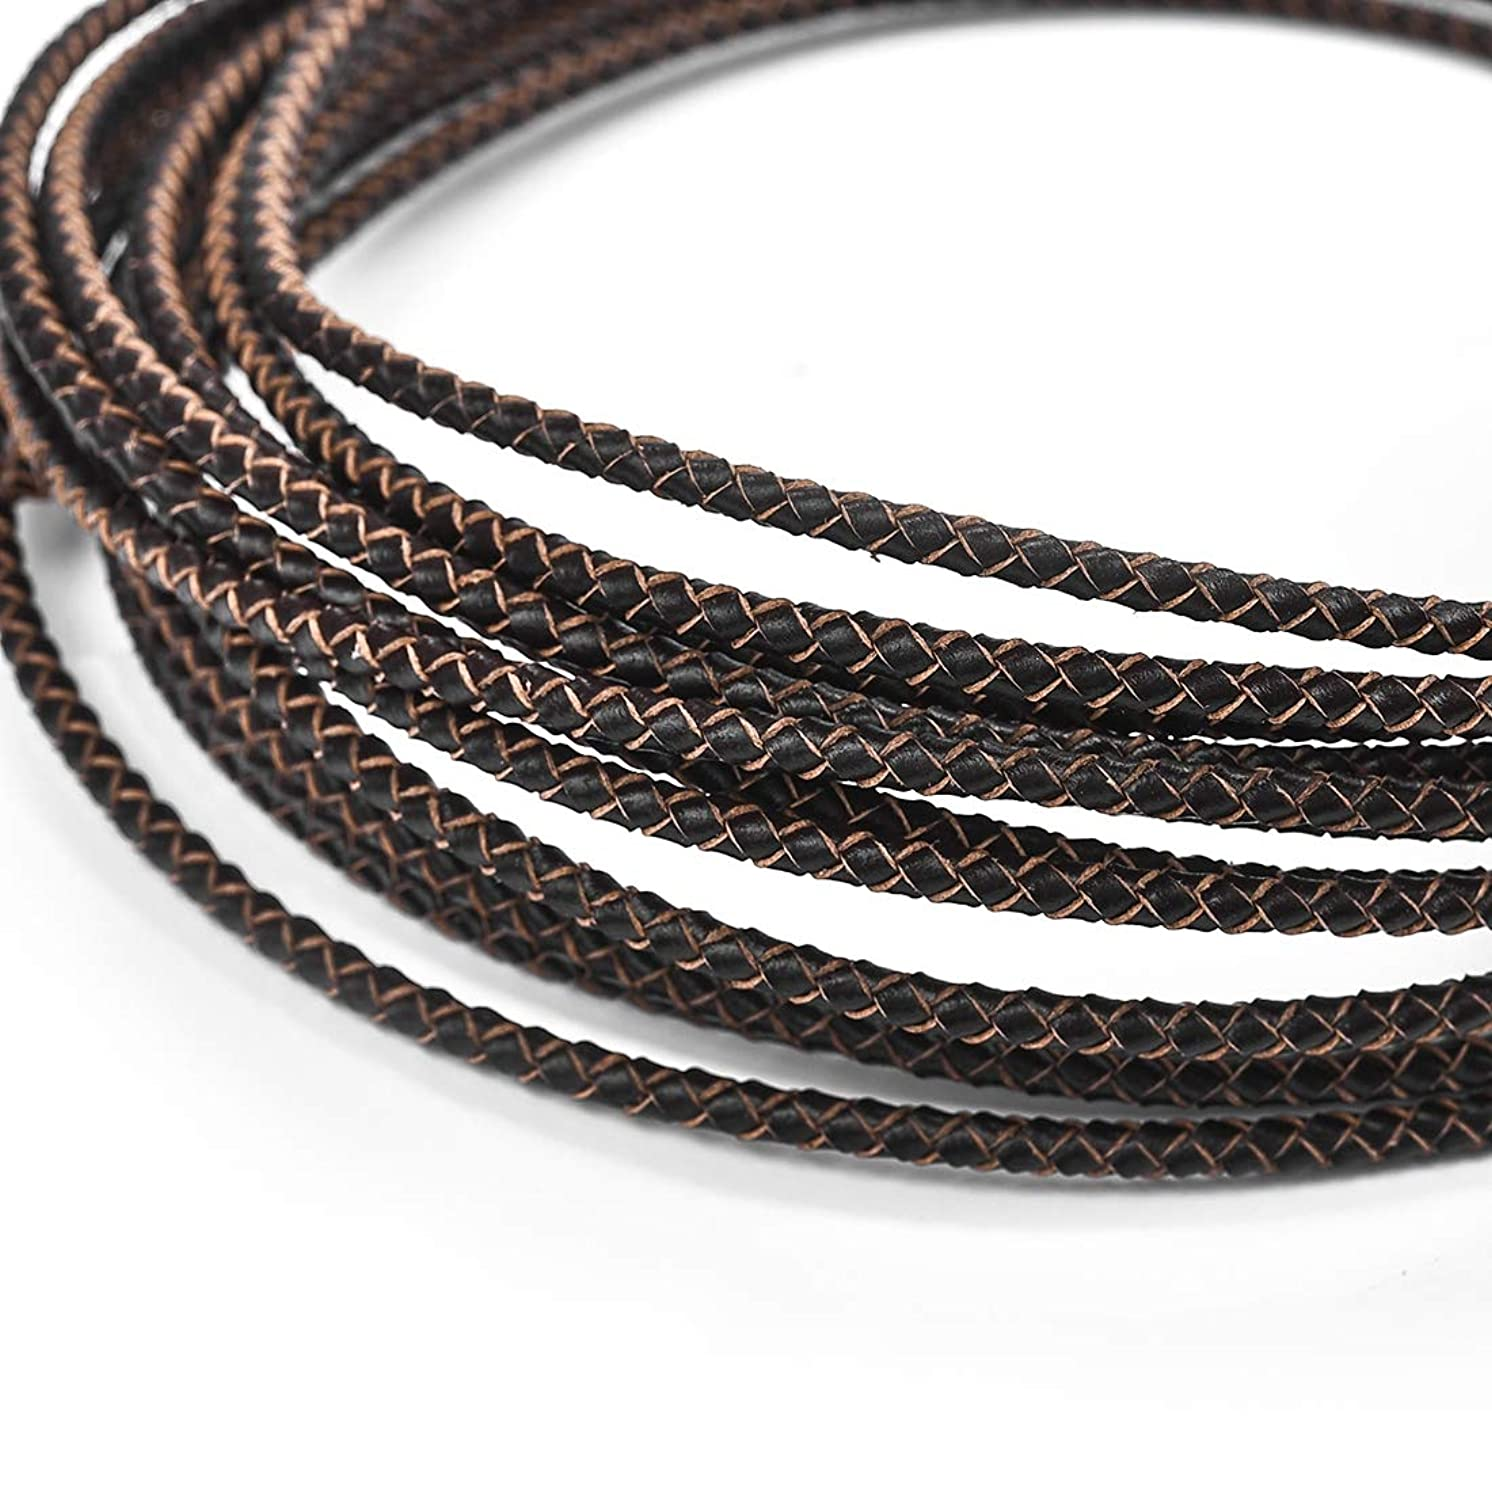 3mm Round Leather Cord Folded Bolo PU Braided Leather Cord Bolo Tie for Necklace Bracelet Jewelry Making Dark Brown 5 Meters